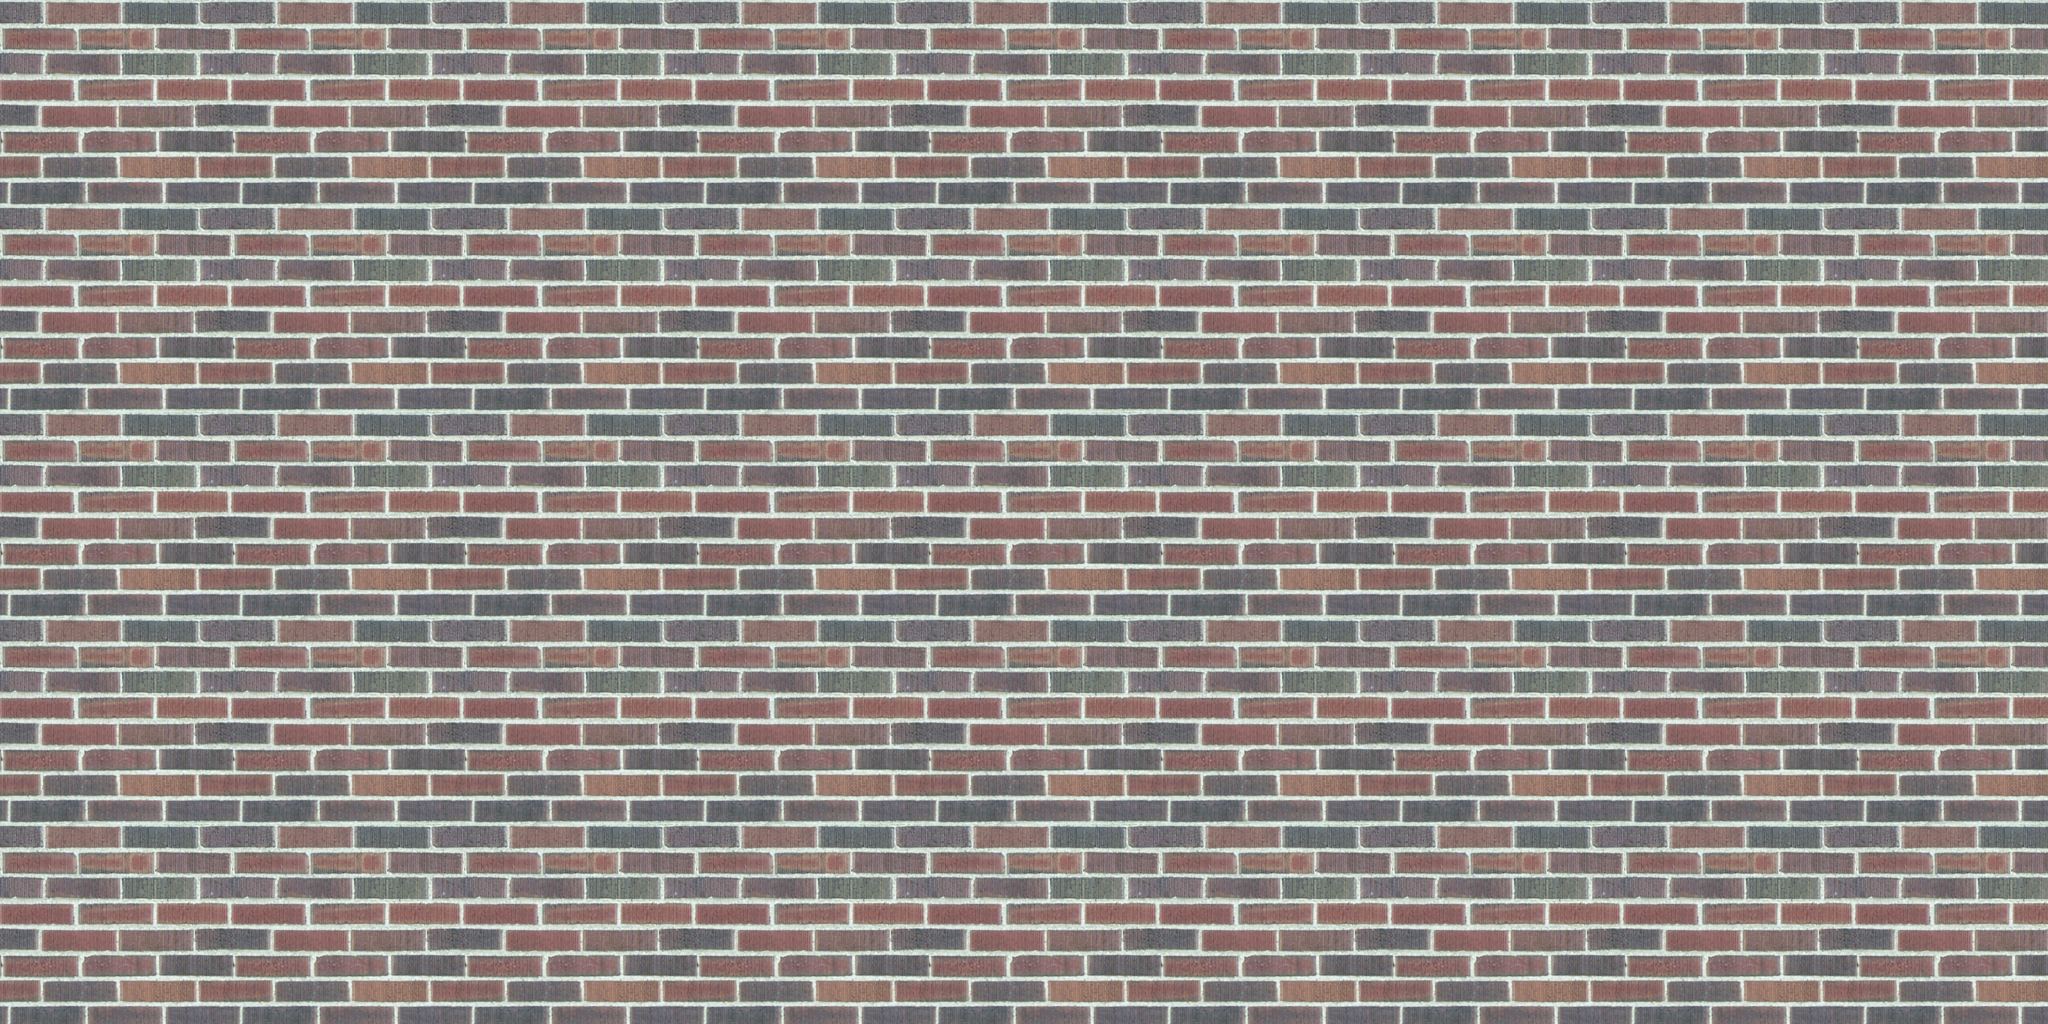 Brick Wallpapers High Quality Download Free